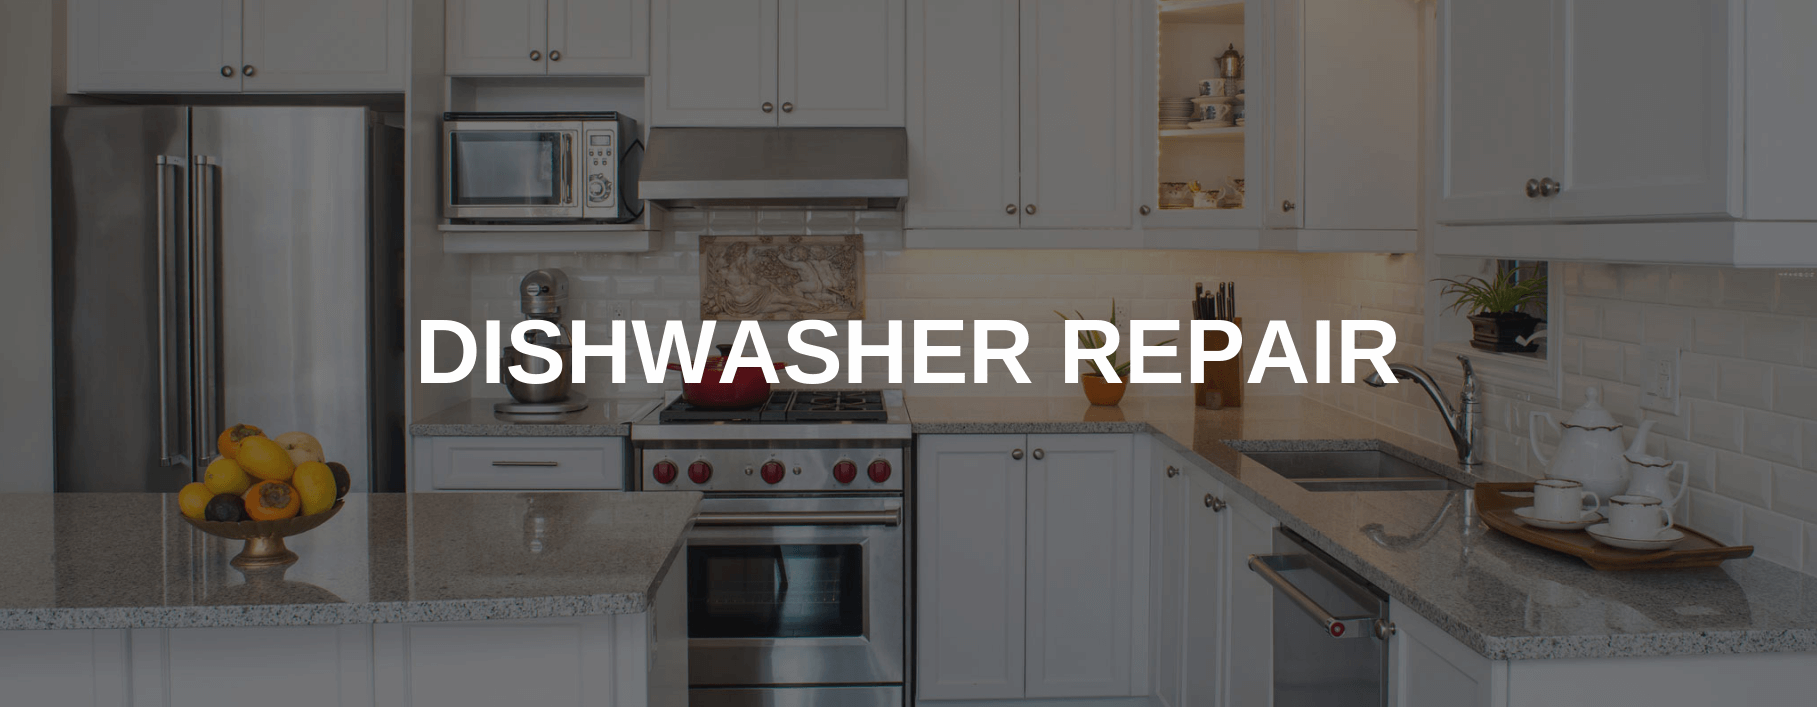 dishwasher repair fort lee